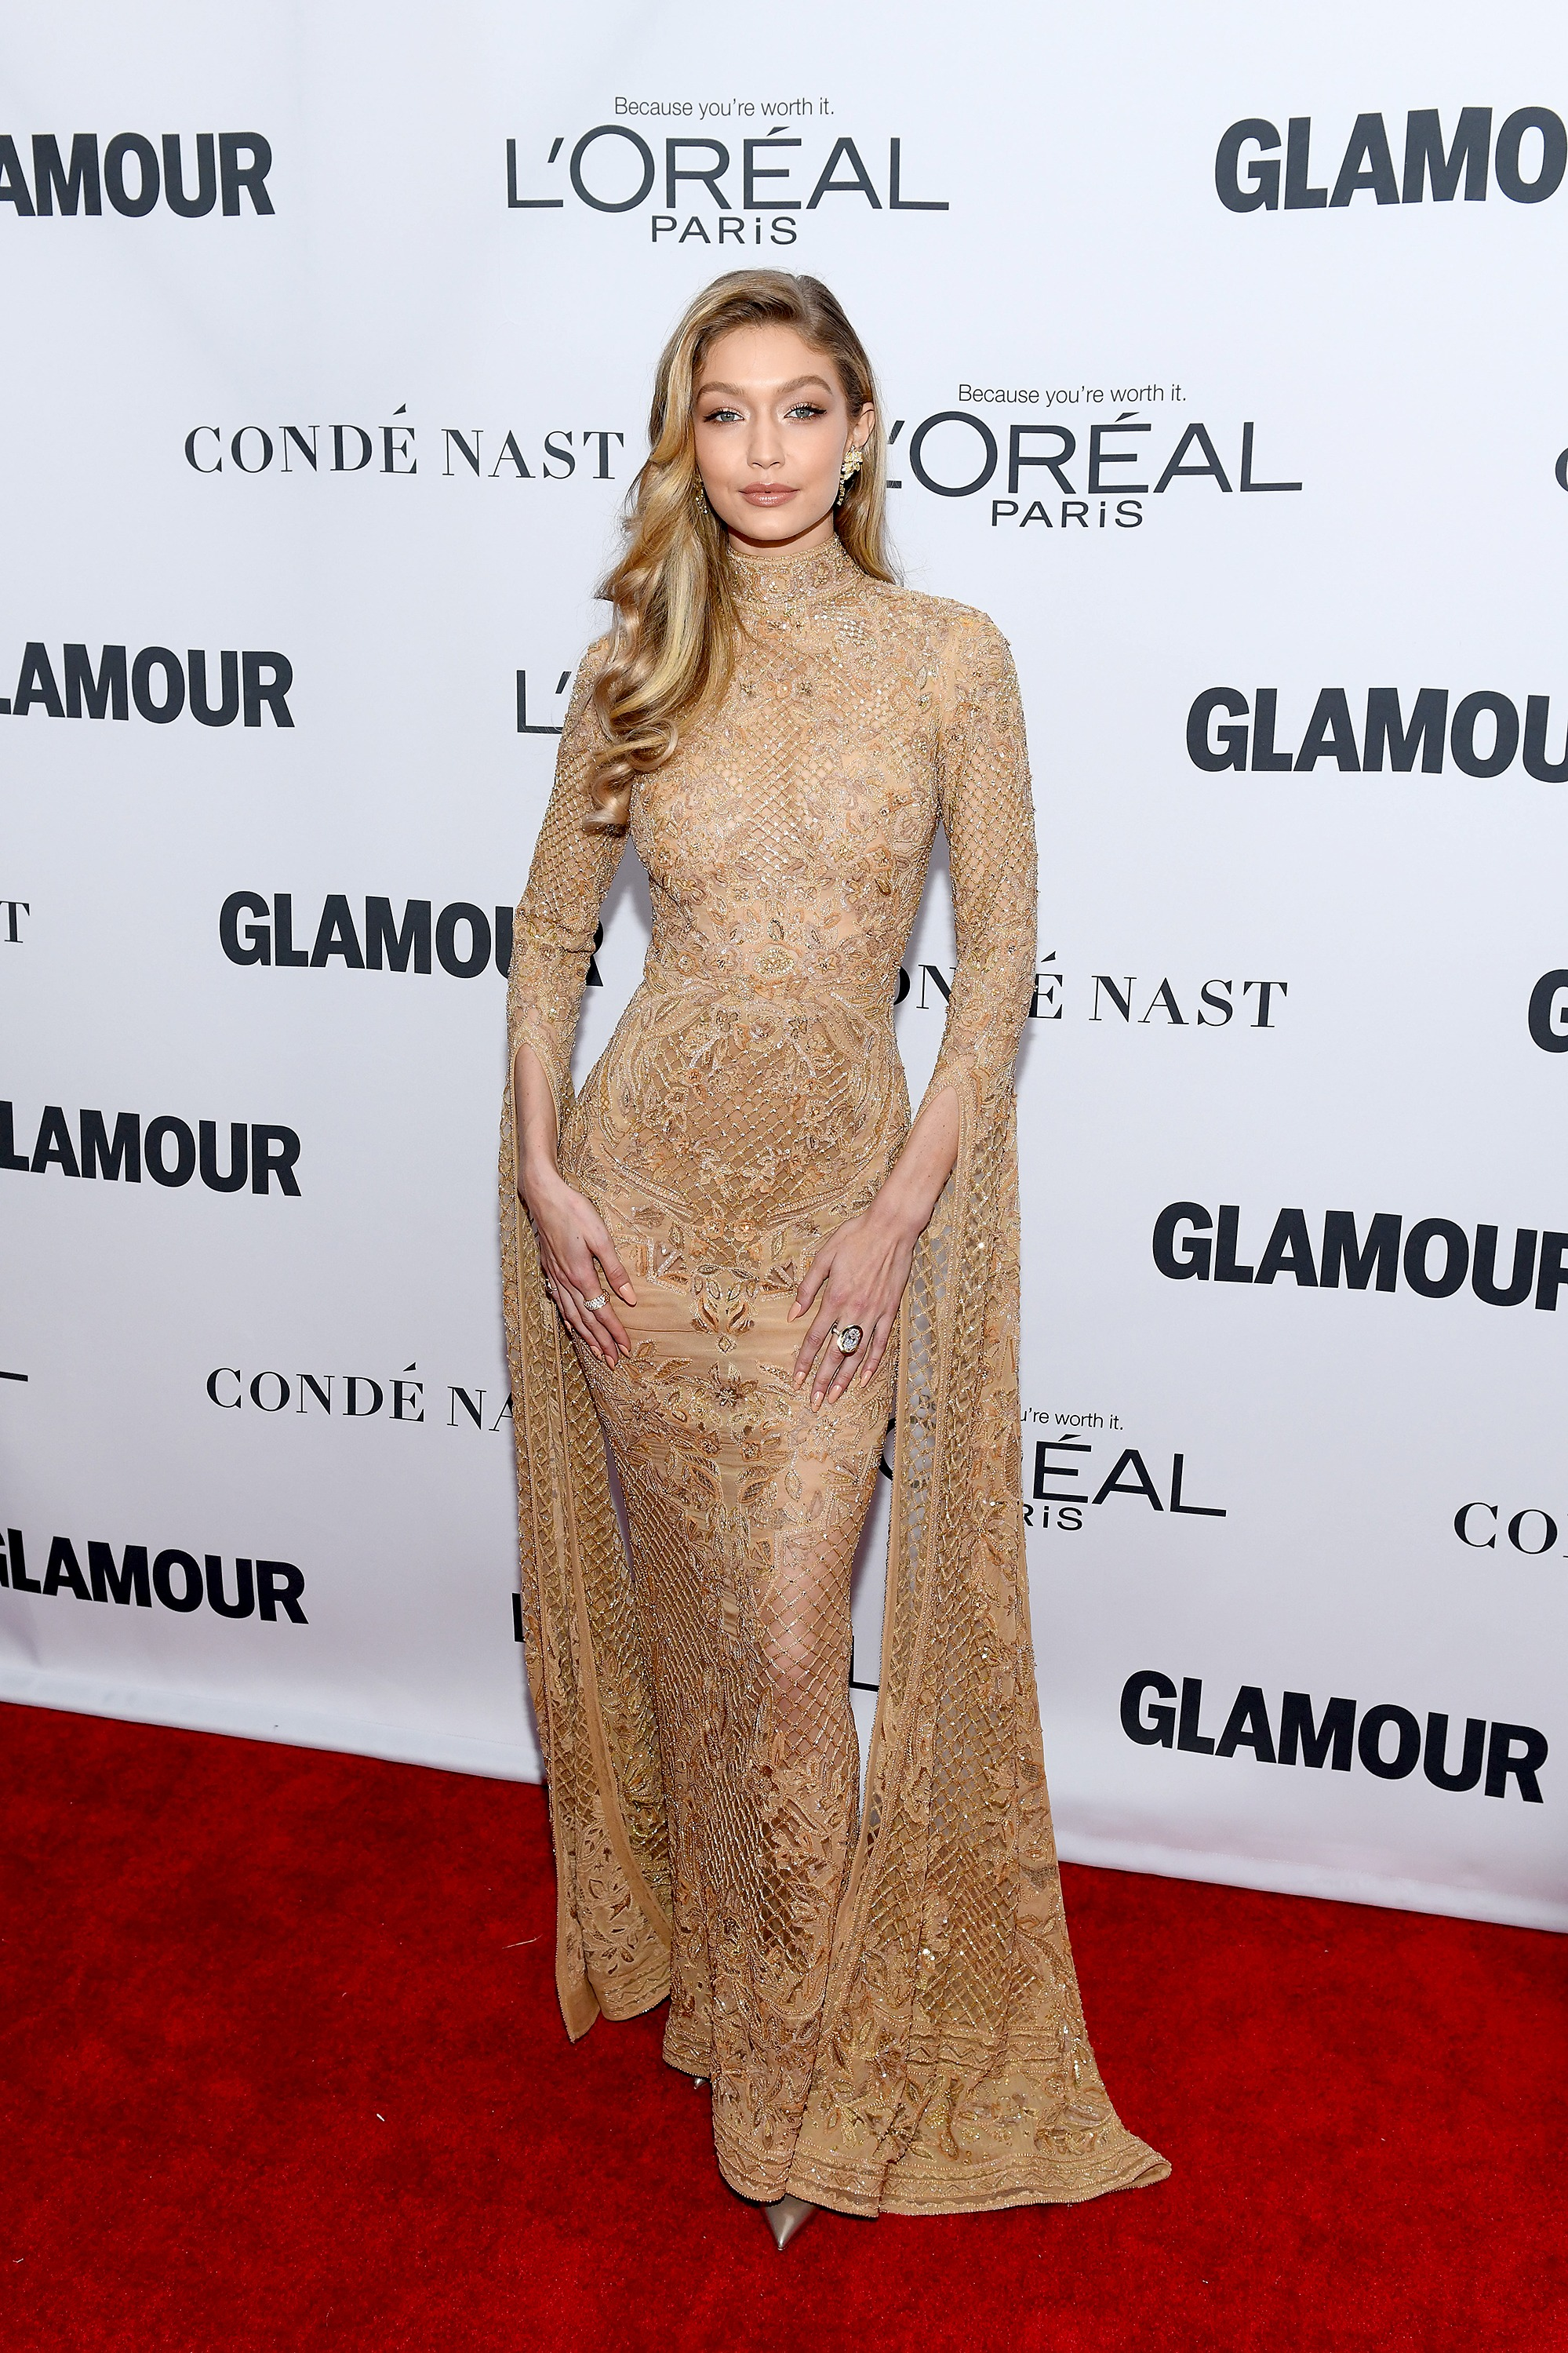 "<p>Gigi Hadid dressed for the occasion at the Glamour Women of the Year event alongside fellow honorees Nicole Kidman and Samantha Bee.</p> <p>The nude-look Zuhair Murad dress clung to the supermodel's frame, delivering sophisticated sensuality while covering more than it seemed to reveal.</p> <p>Sister Bella Hadid and Yolanda Foster were on hand to celebrate Gigi's cover. In the special issue Gigi speaks out about the price of fame. </p> <p>""I believe that a lot of judgmental comments come from people not really having compassion for those they see as public figures,"" Gigi tells <a href=""https://www.glamour.com/inspired/women-of-the-year"" target=""_blank"">Glamour</a>. ""It's frustrating to see people question my actions or integrity based off something as trivial as leaving my apartment building. I'm just doing my best as I move through life, sometimes dealing with relative hardships like everyone else.""</p> <p>While Gigi opted for a gown worthy of the Oscars, many guests embraced the move towards suits, including last year's honoree Ashley Graham.</p> <p>See the best looks here.</p> <p> </p>"